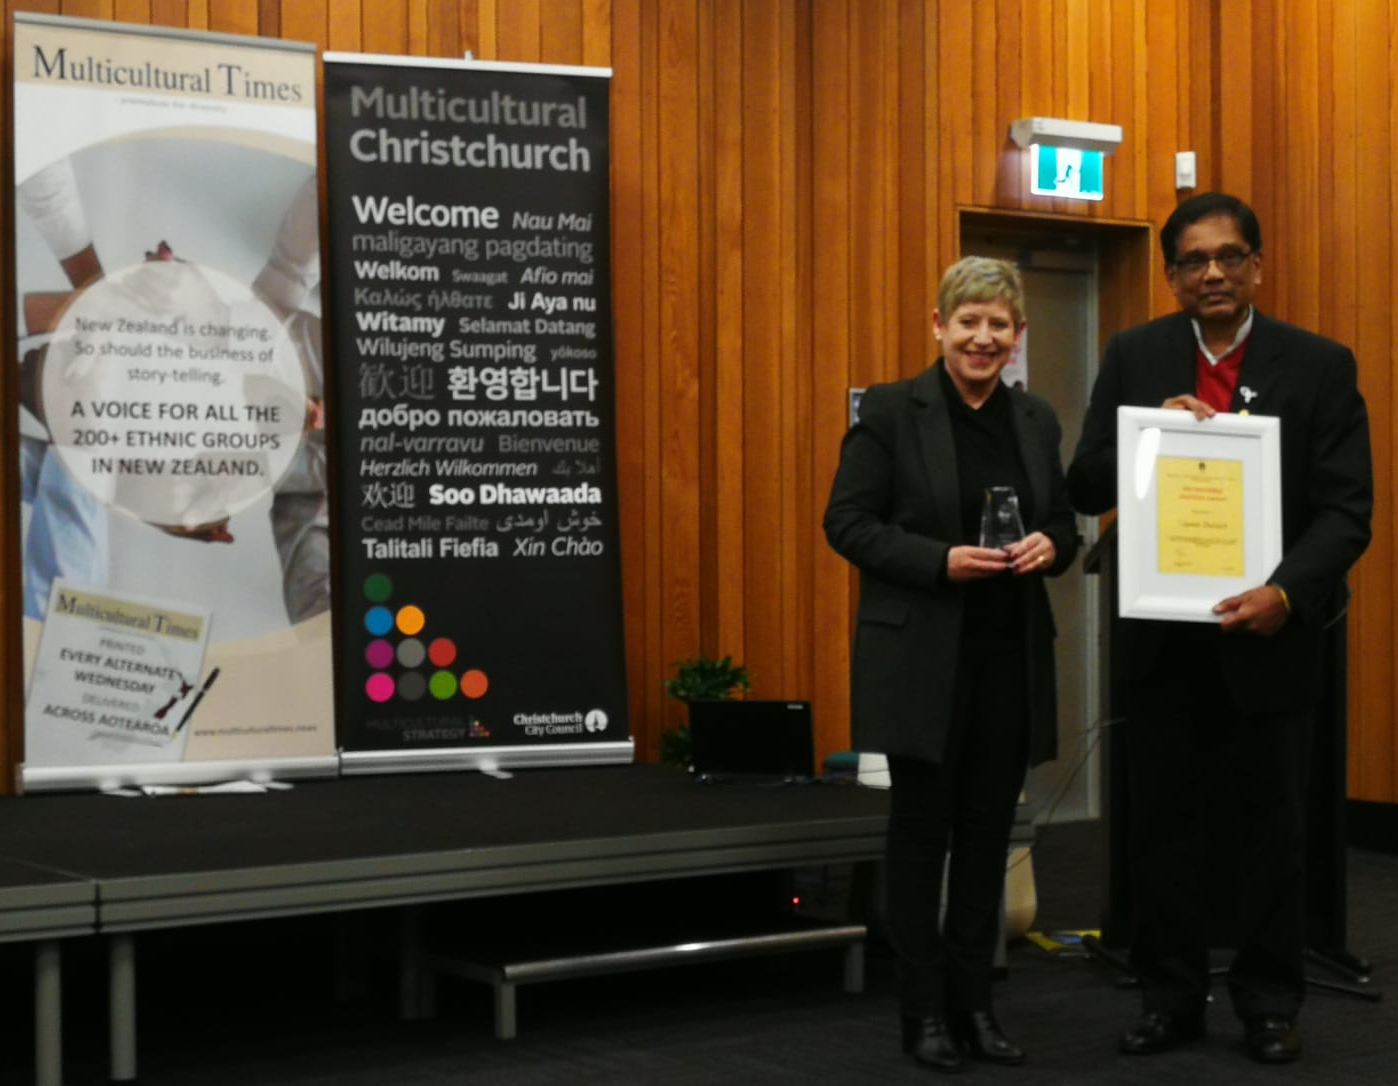 Christchurch Mayor Lianne Dalziel, with New Zealand Federation of Multicultural Councils (MNZ) president Pancha Narayanan. MNZ presented two awards during the evening.  The Mayor received the Distinguished Service Award for significant contribution in making visible and valuable difference to the multicultural community of Aotearoa New Zealand.  Then Councillor Jimmy Chen received the Community Service Excellence Award (presented by Surinder Tandon, President, Christchurch Multicultural Council), which was given to the Christchurch City Council in recognition of the City Council's leadership in establishing the first multicultural strategy in New Zealand.